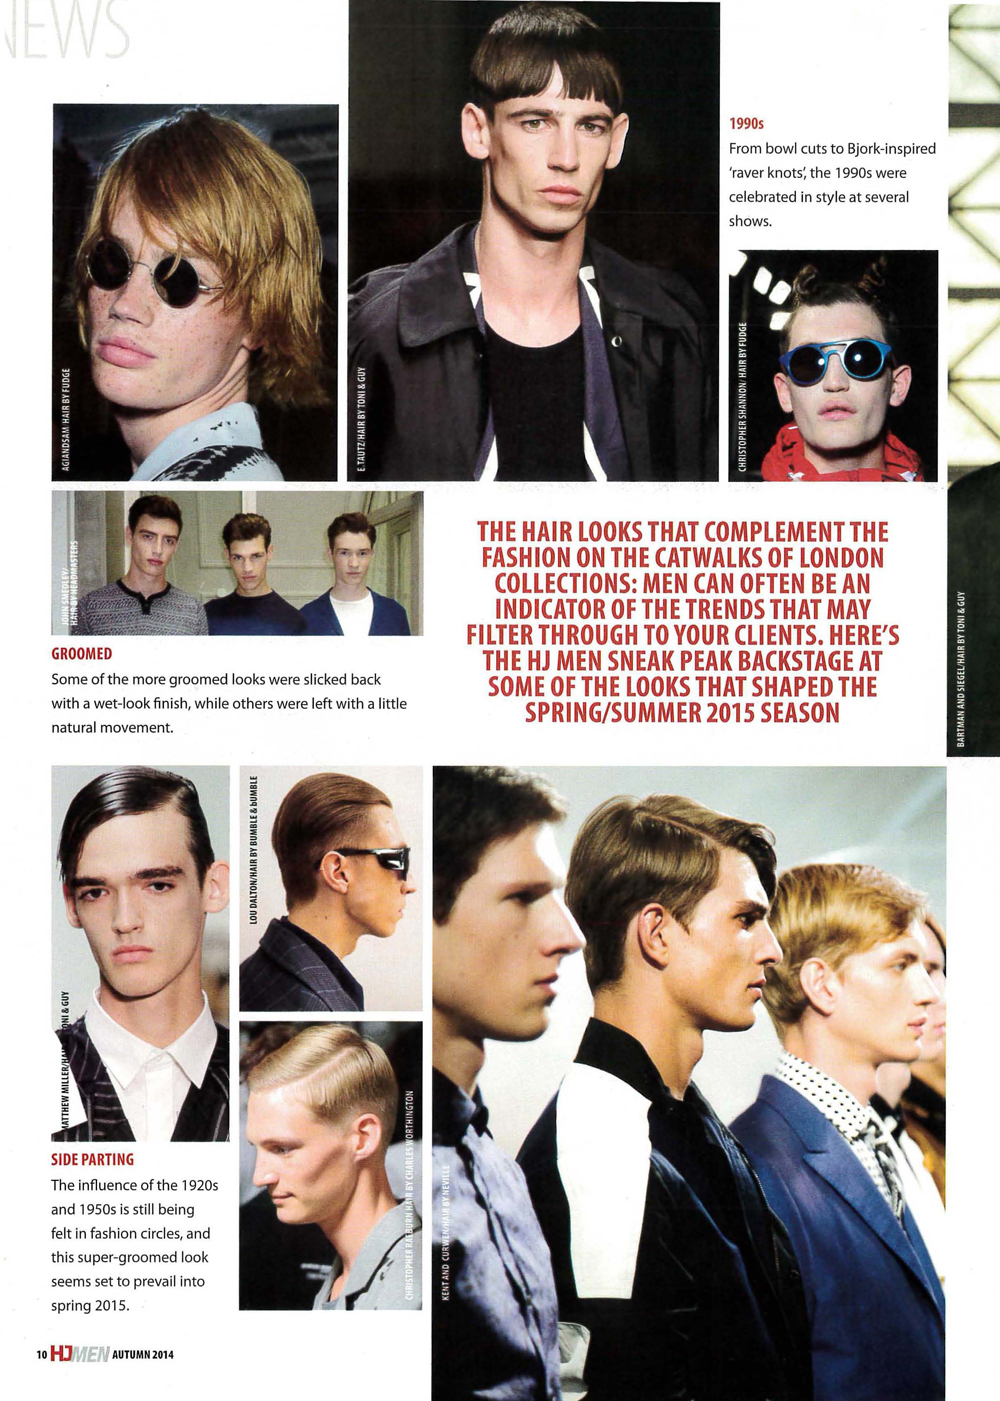 Hairdressers Journal MENS GUIDE featuring John Smedley image styled by Headmasters Artistic Team_Page_2